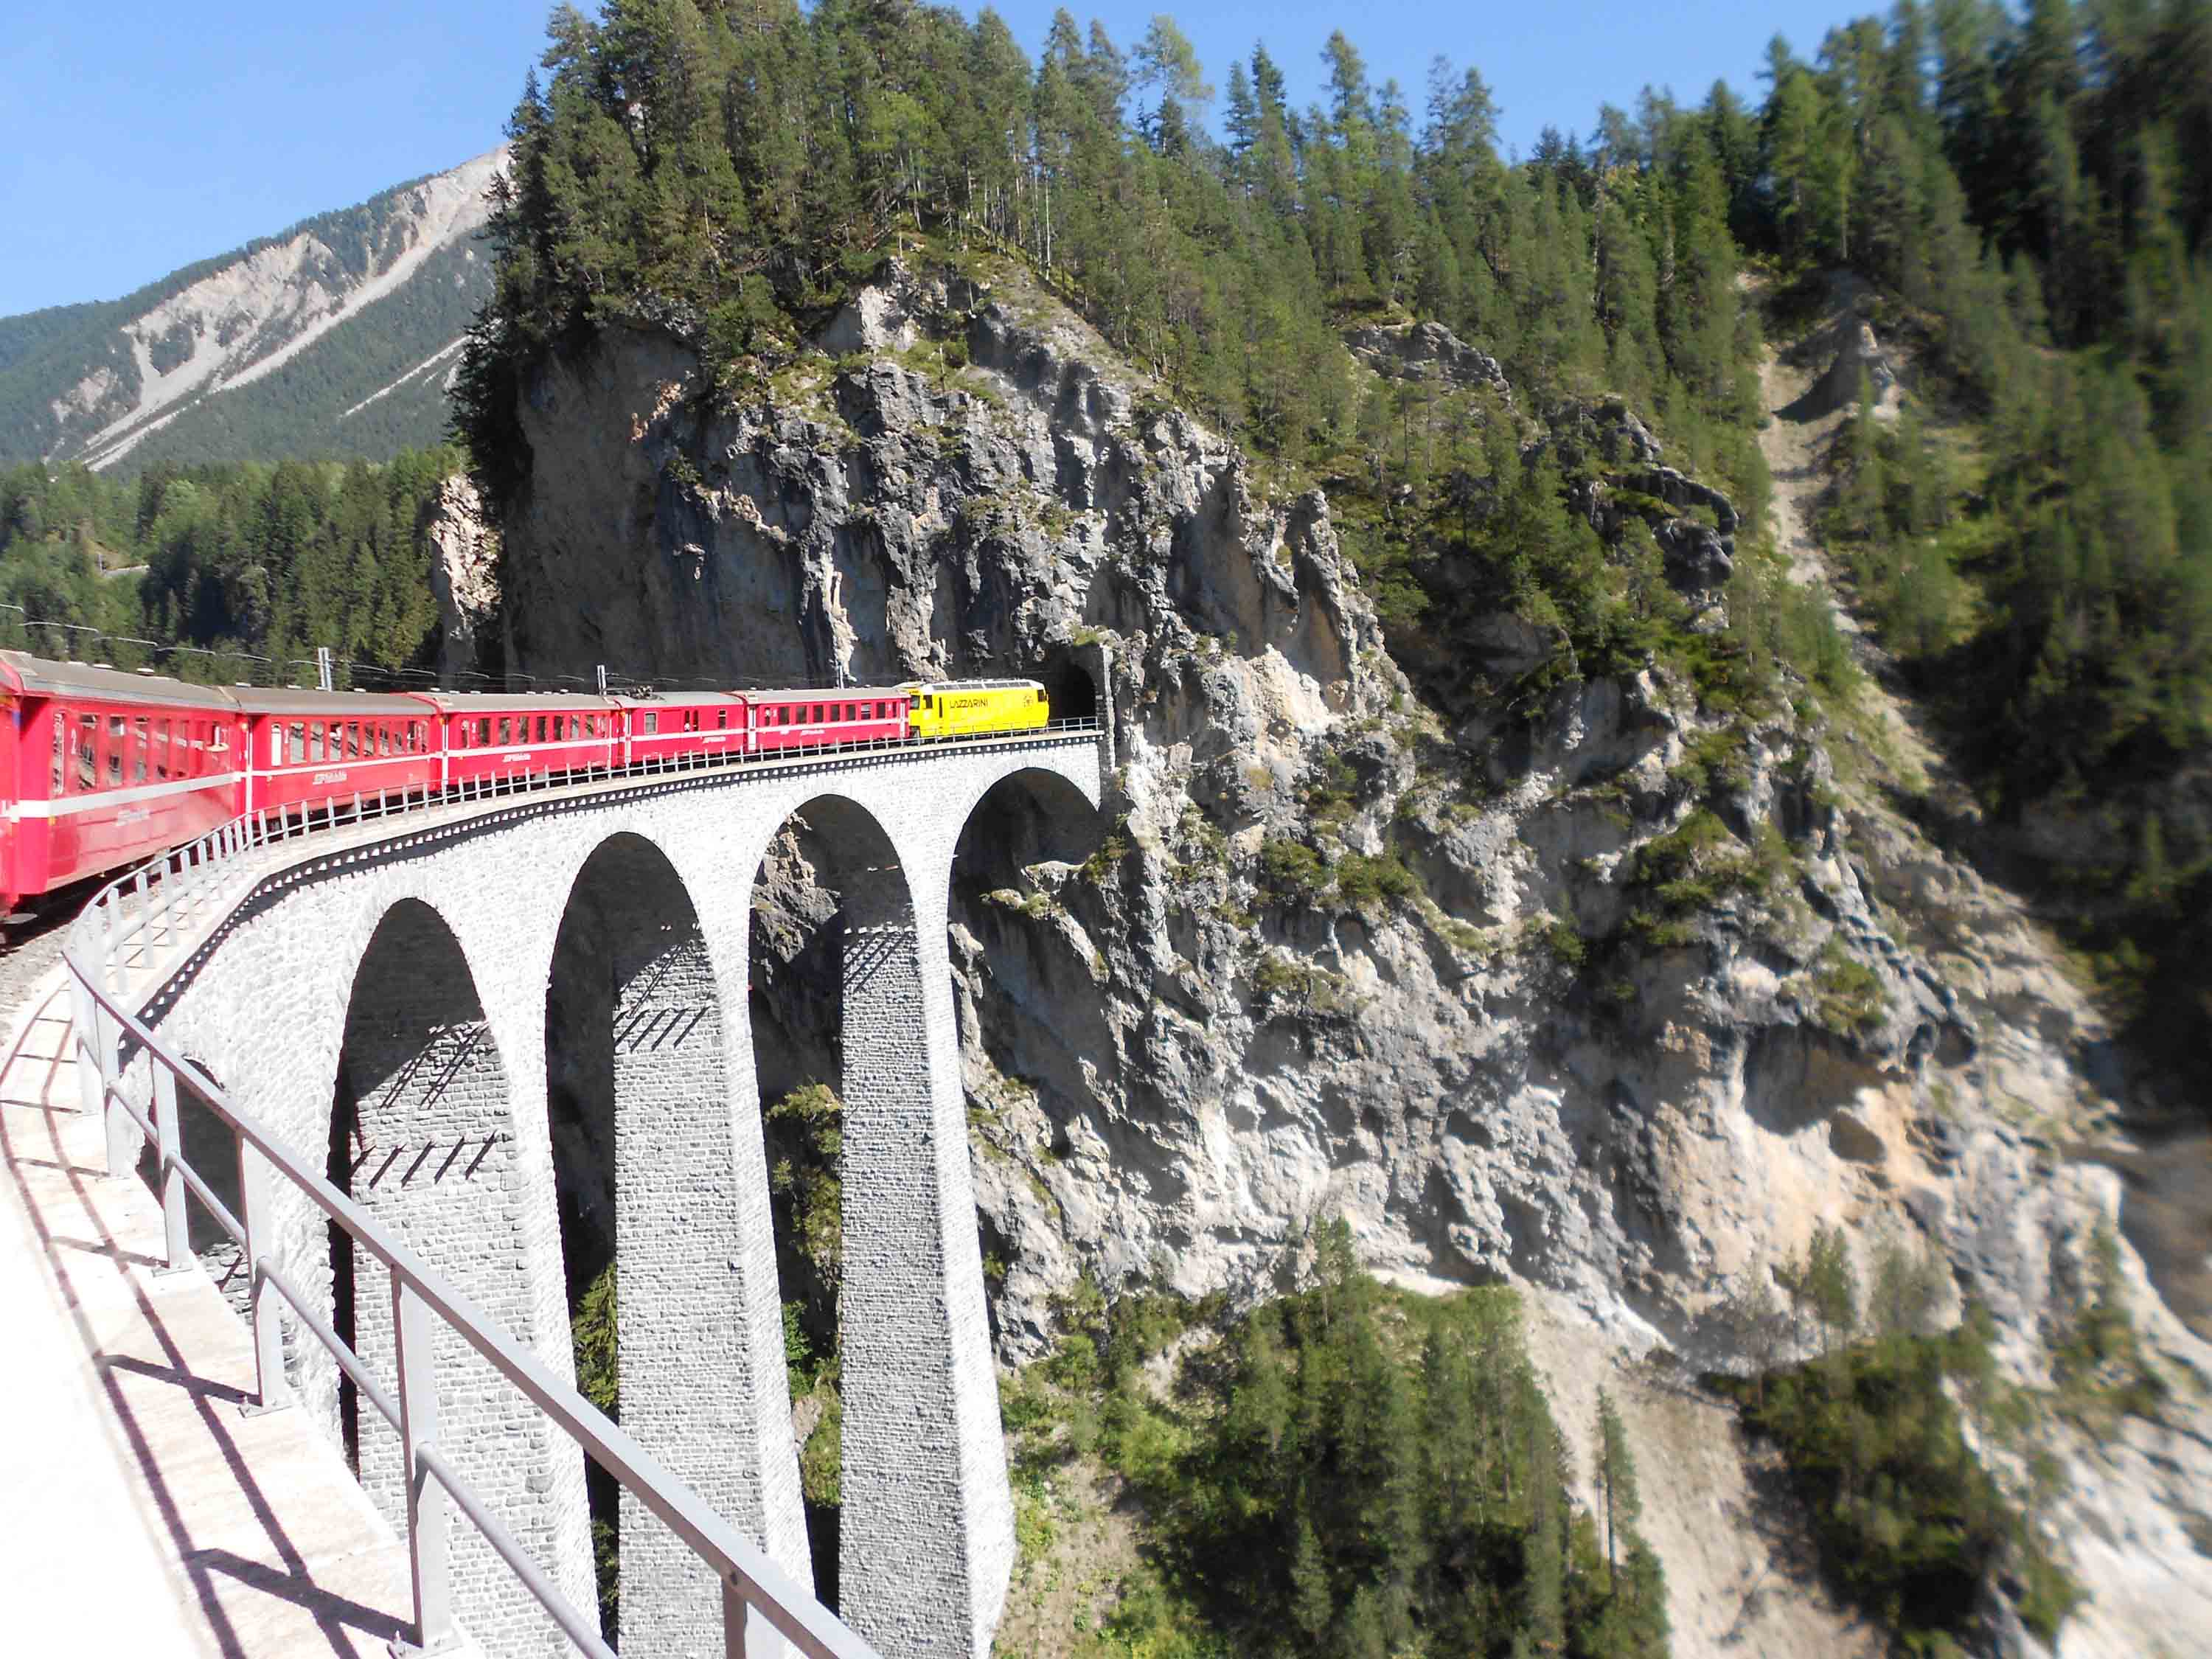 Passing over the Landwasser Aquaduct into the tunnel cut into the rock face.